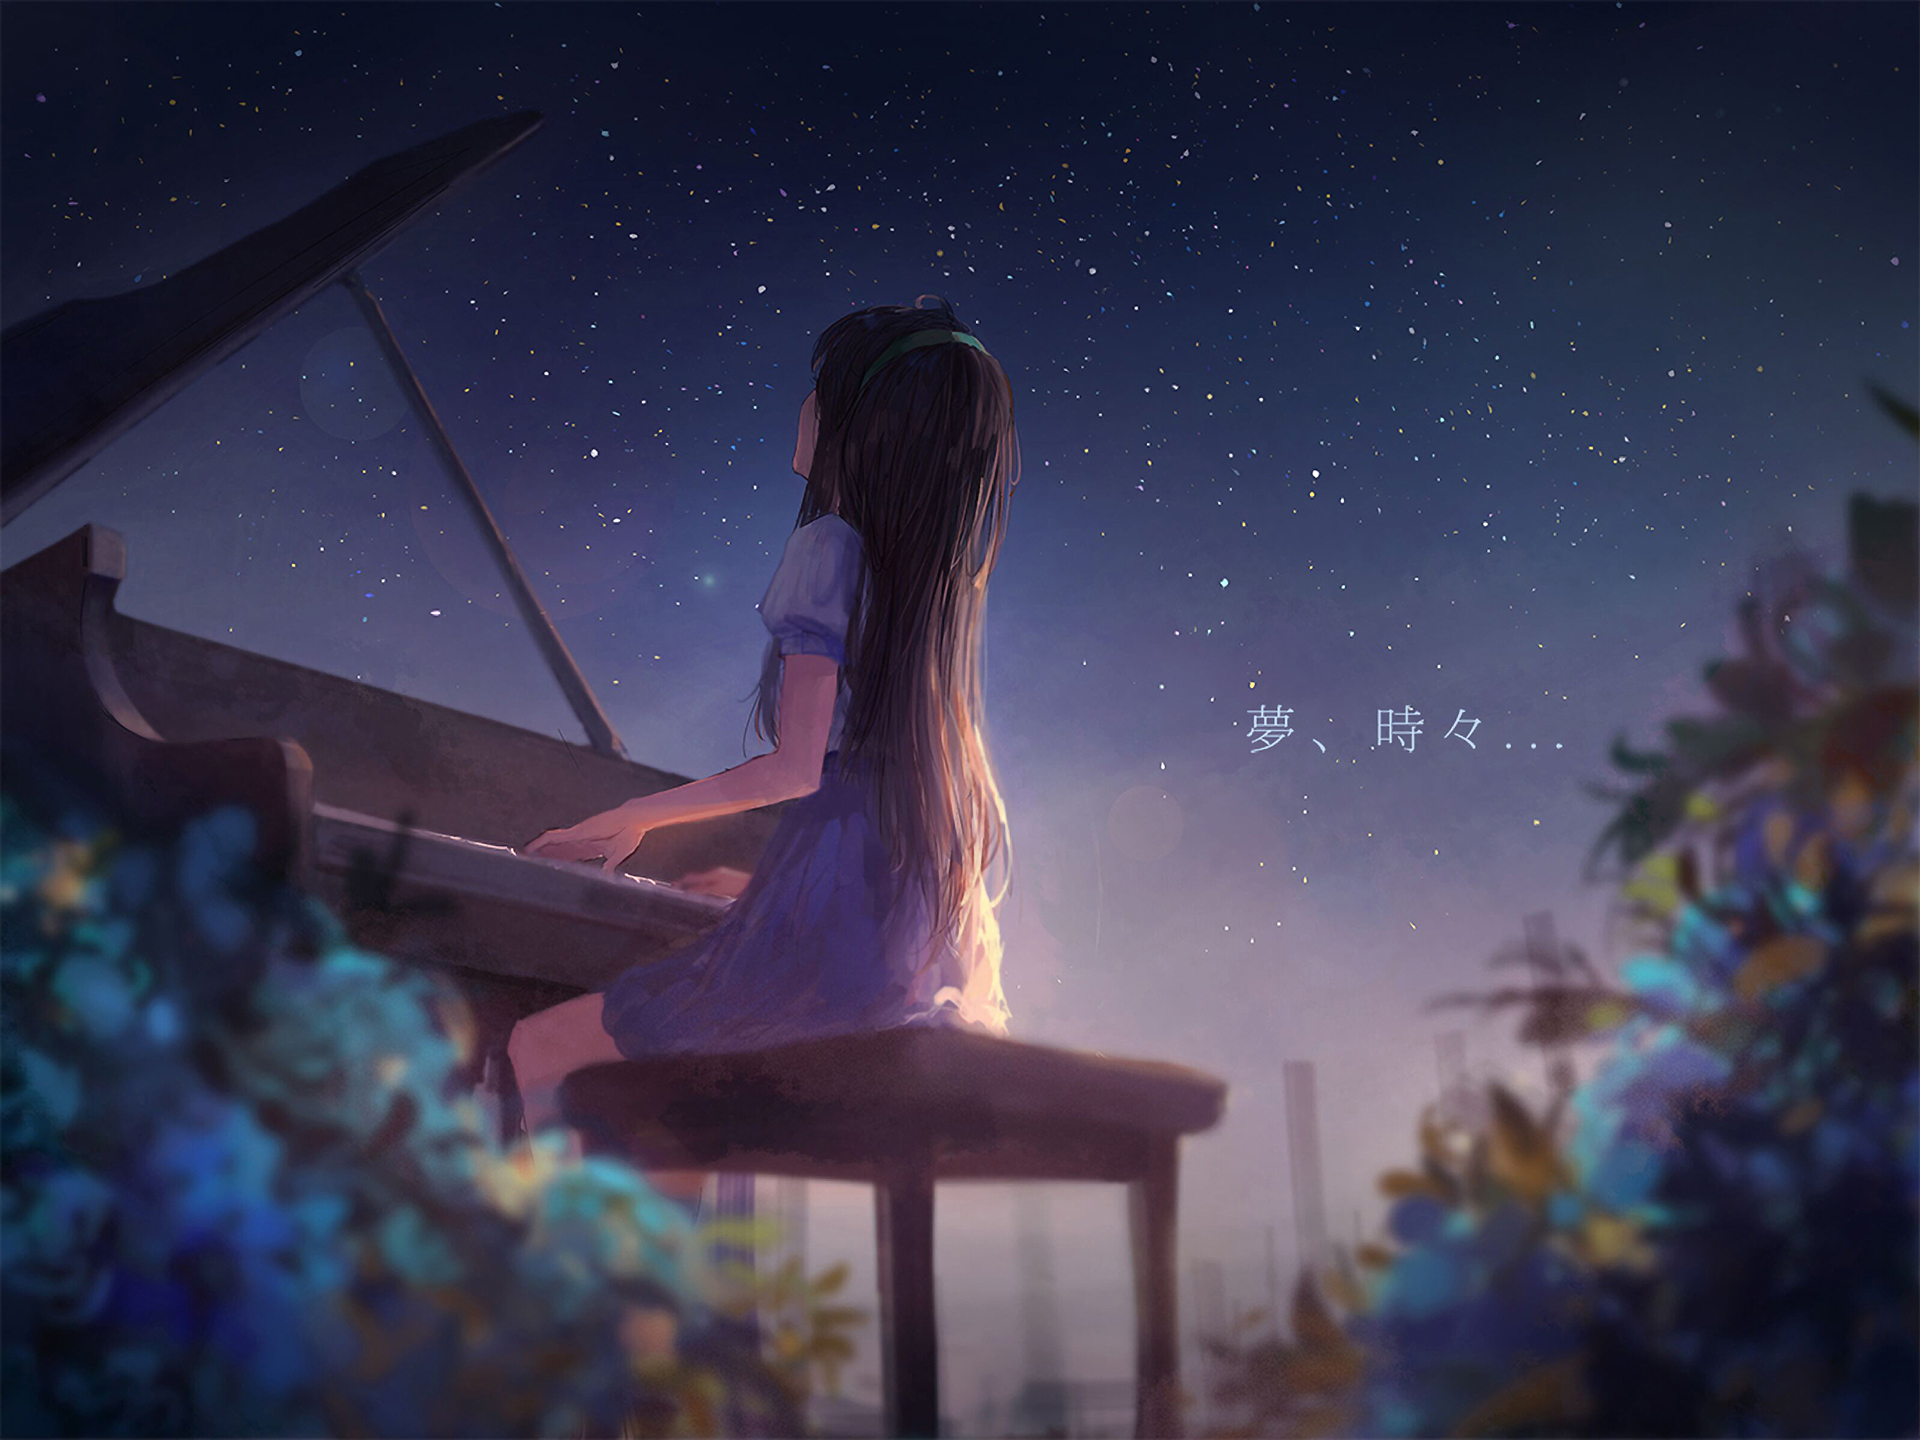 Anime Anime Girls Piano Fantasy Art Digital Night Alone Classical